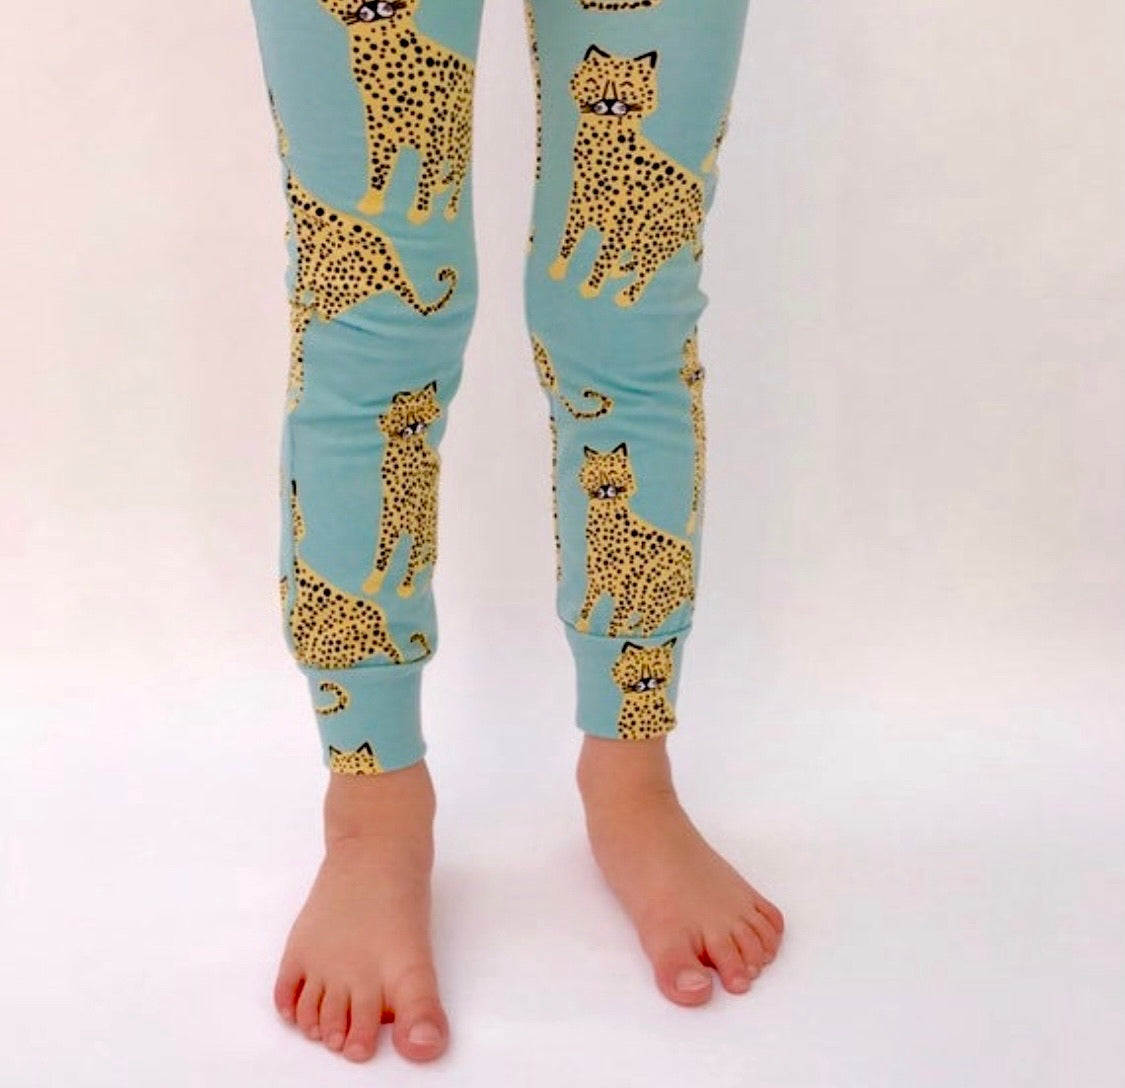 "Eddie & Bee organic cotton leggings in Aqua""Happy leopards"" print."